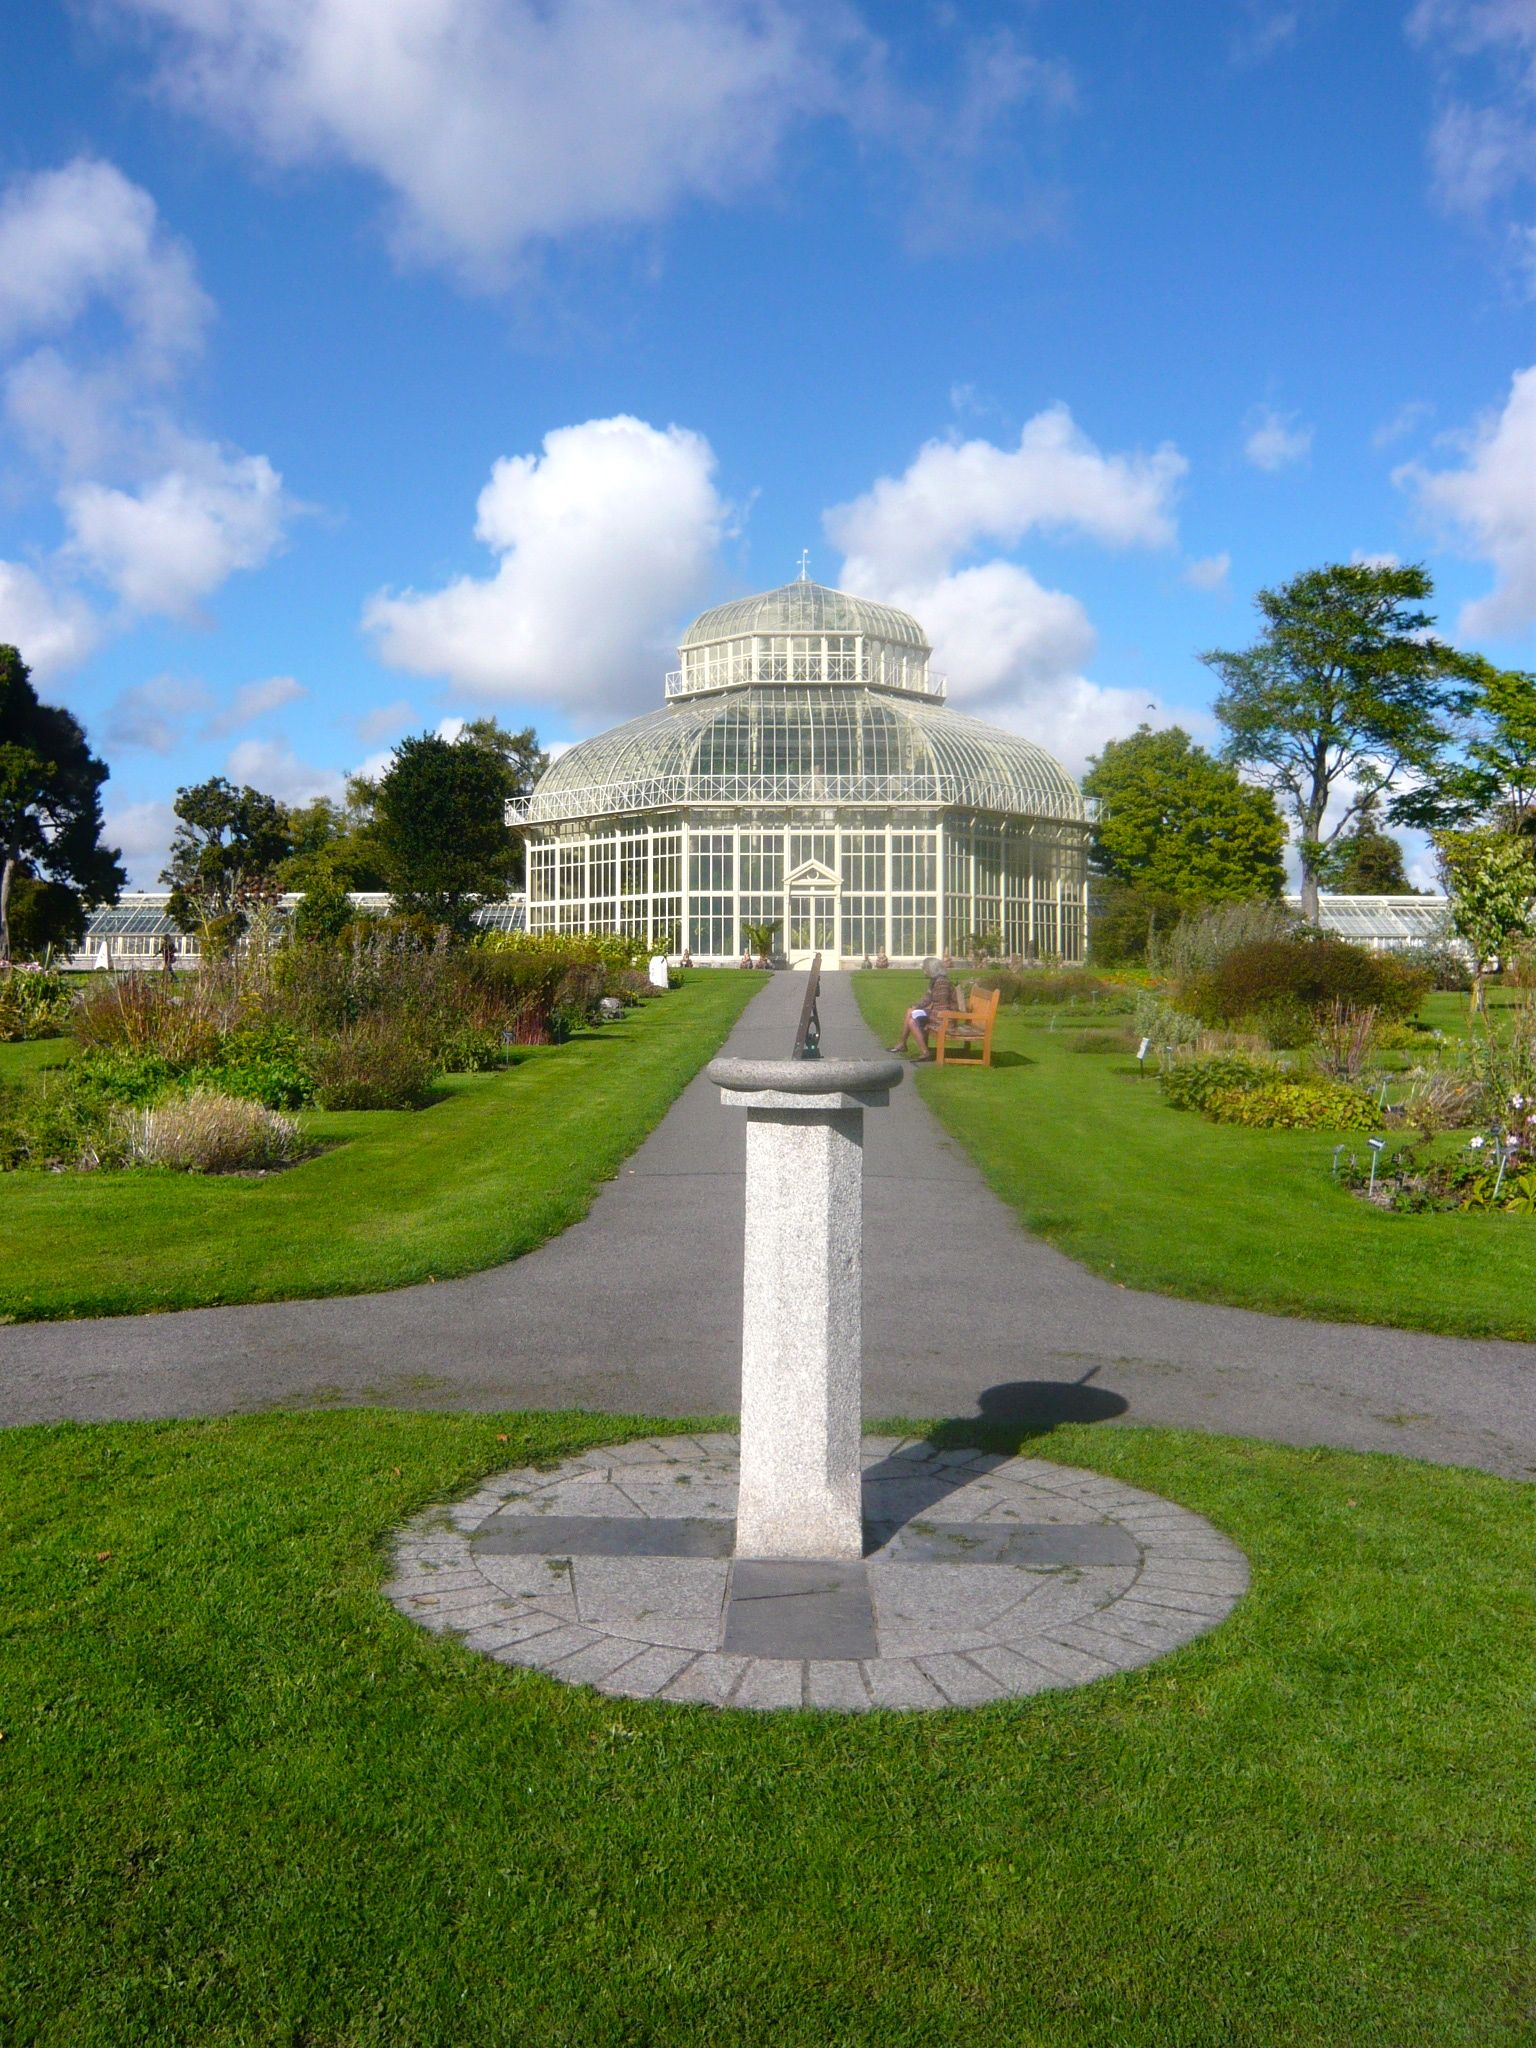 The National Botanic Gardens Glasnevin is a short taxi